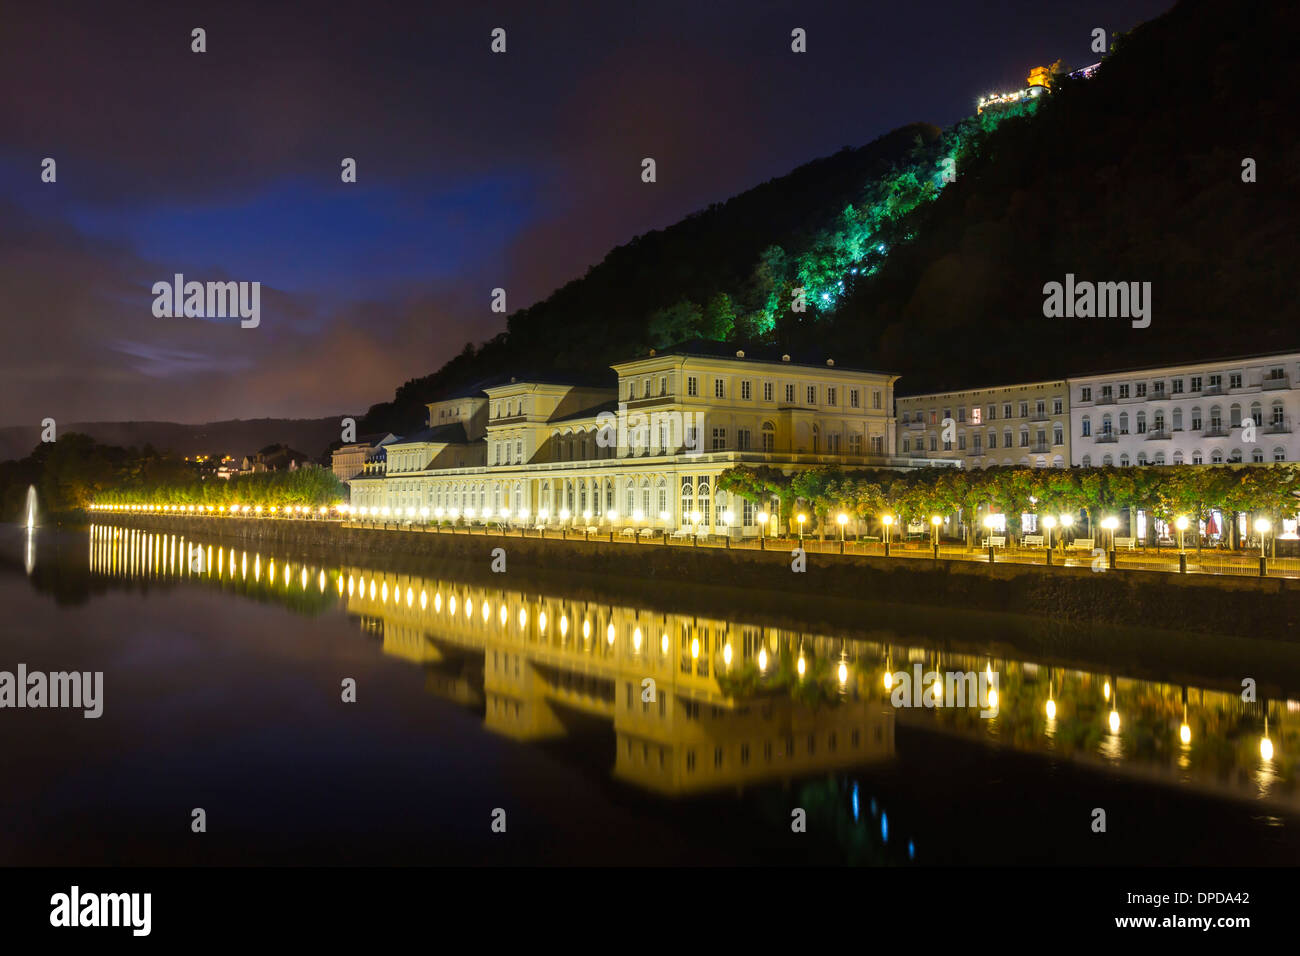 Germany, Rhineland-Palatinate, Bad Ems, Cure and helth resort building - Stock Image